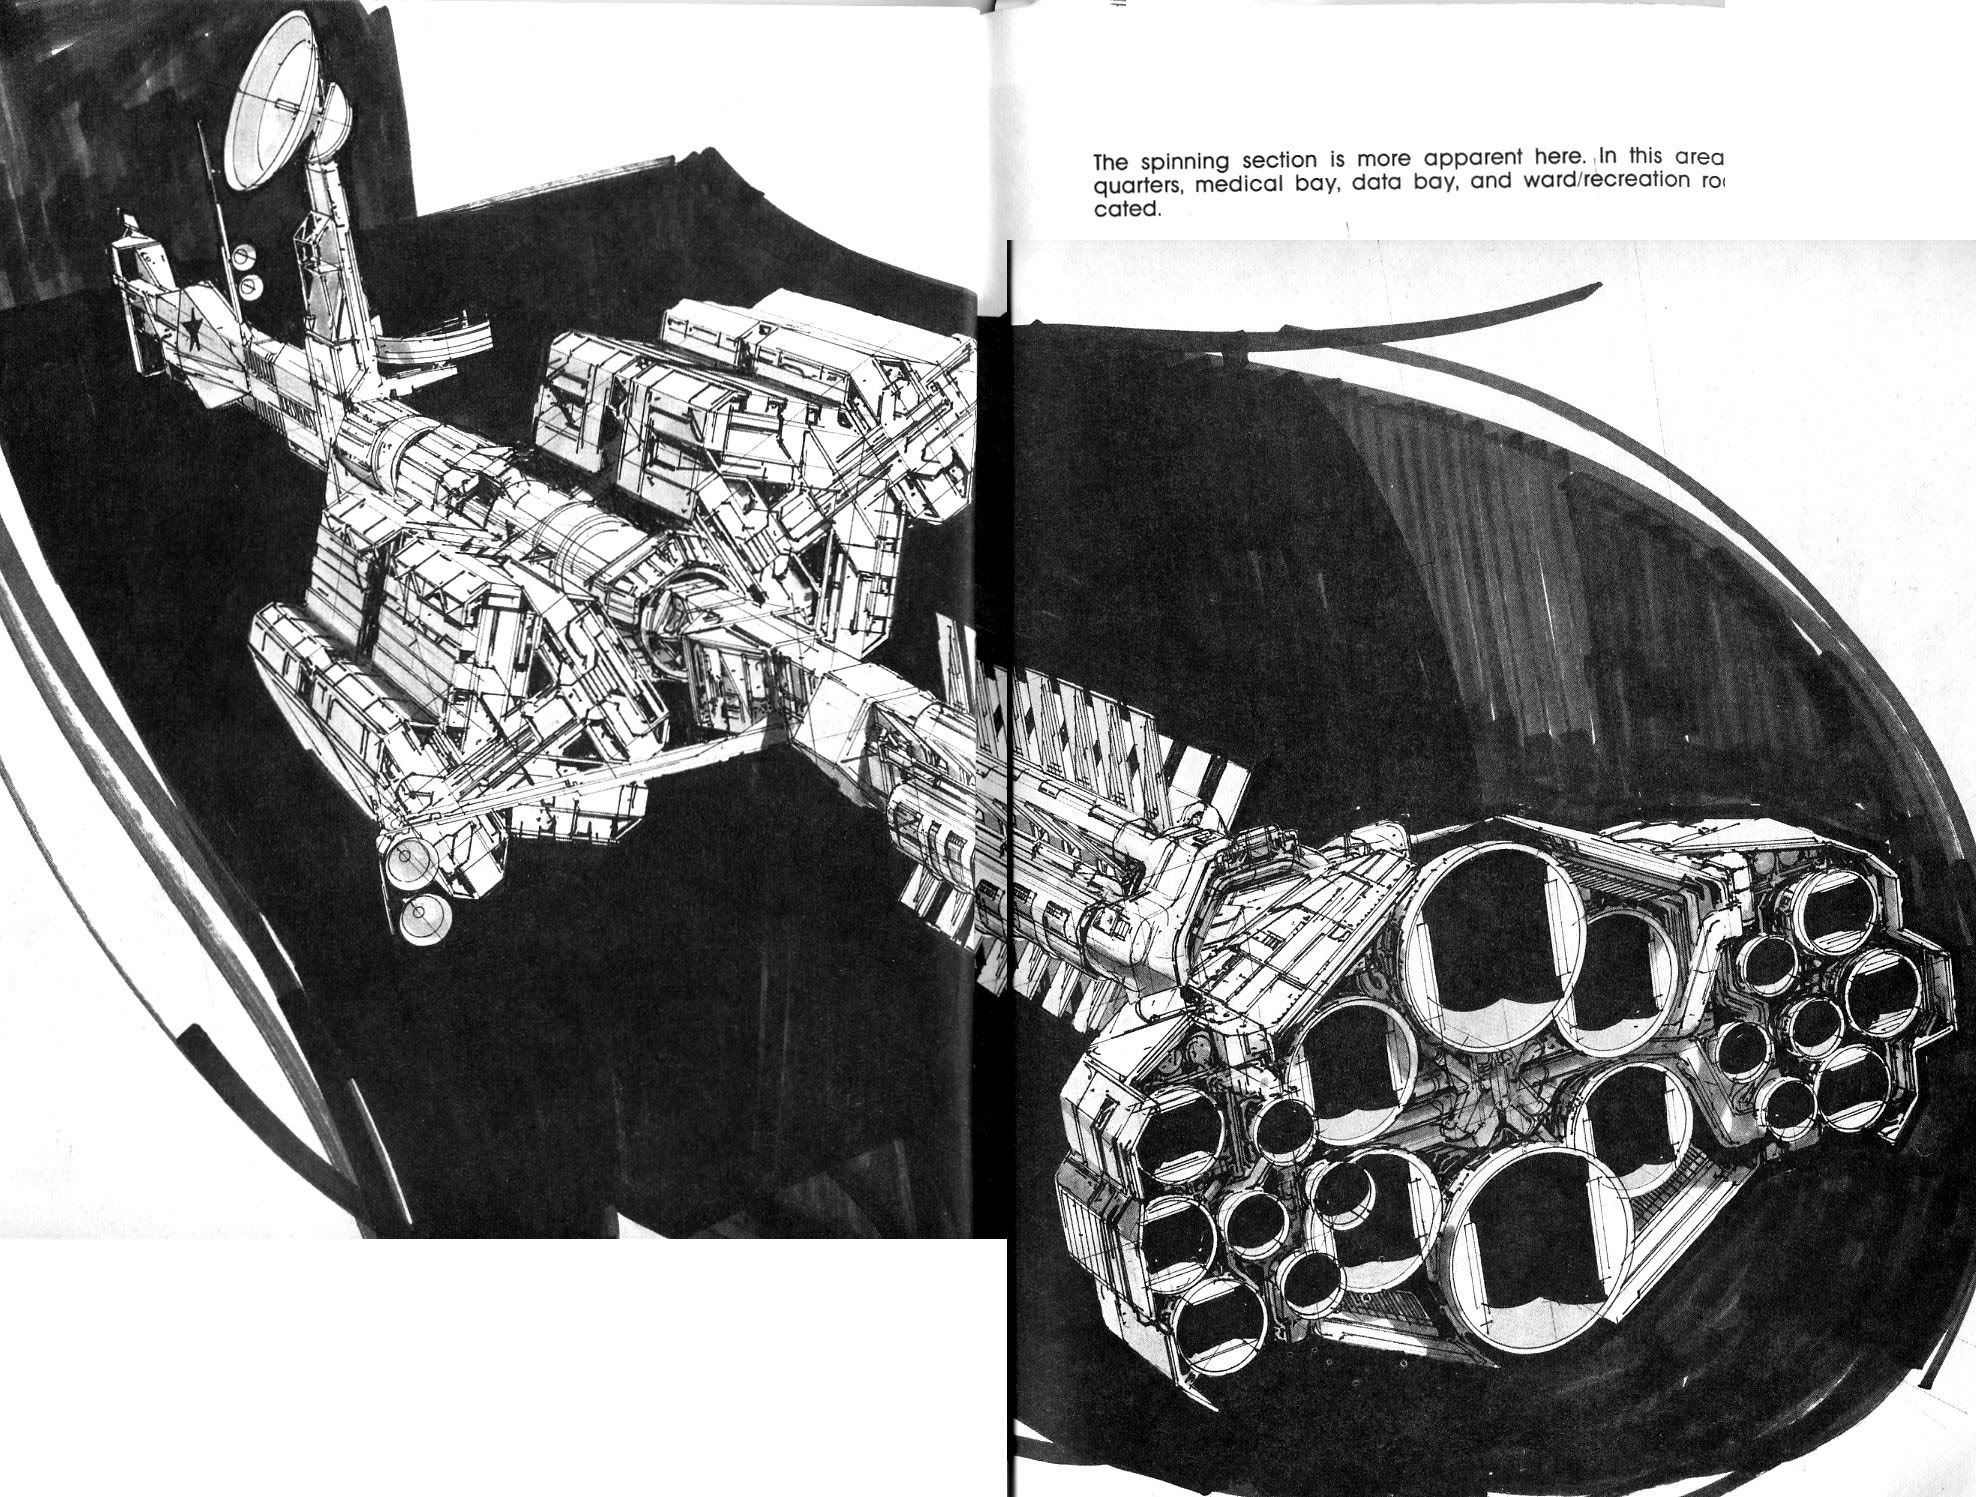 Syd Mead Engine Concept Sketch Photo Engrear Sketch Jpg Syd